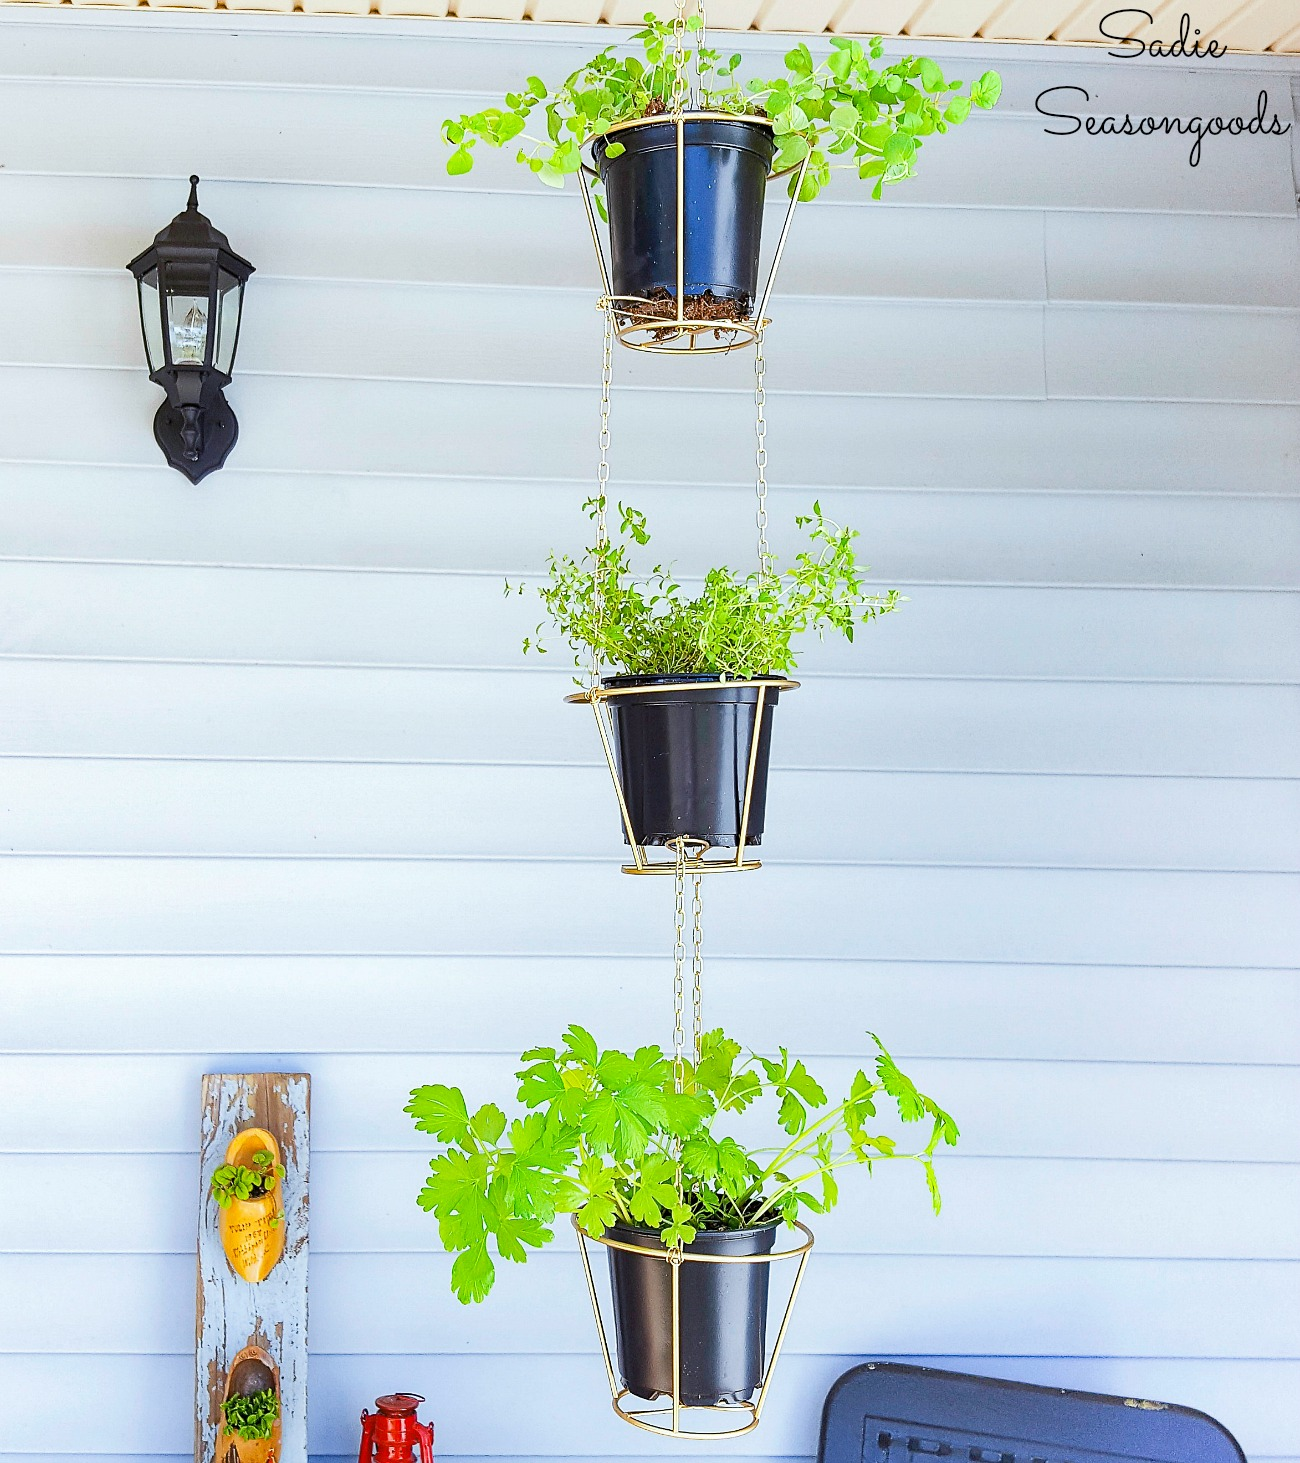 Wire Hanging Baskets for Herbs from Lampshade Frames